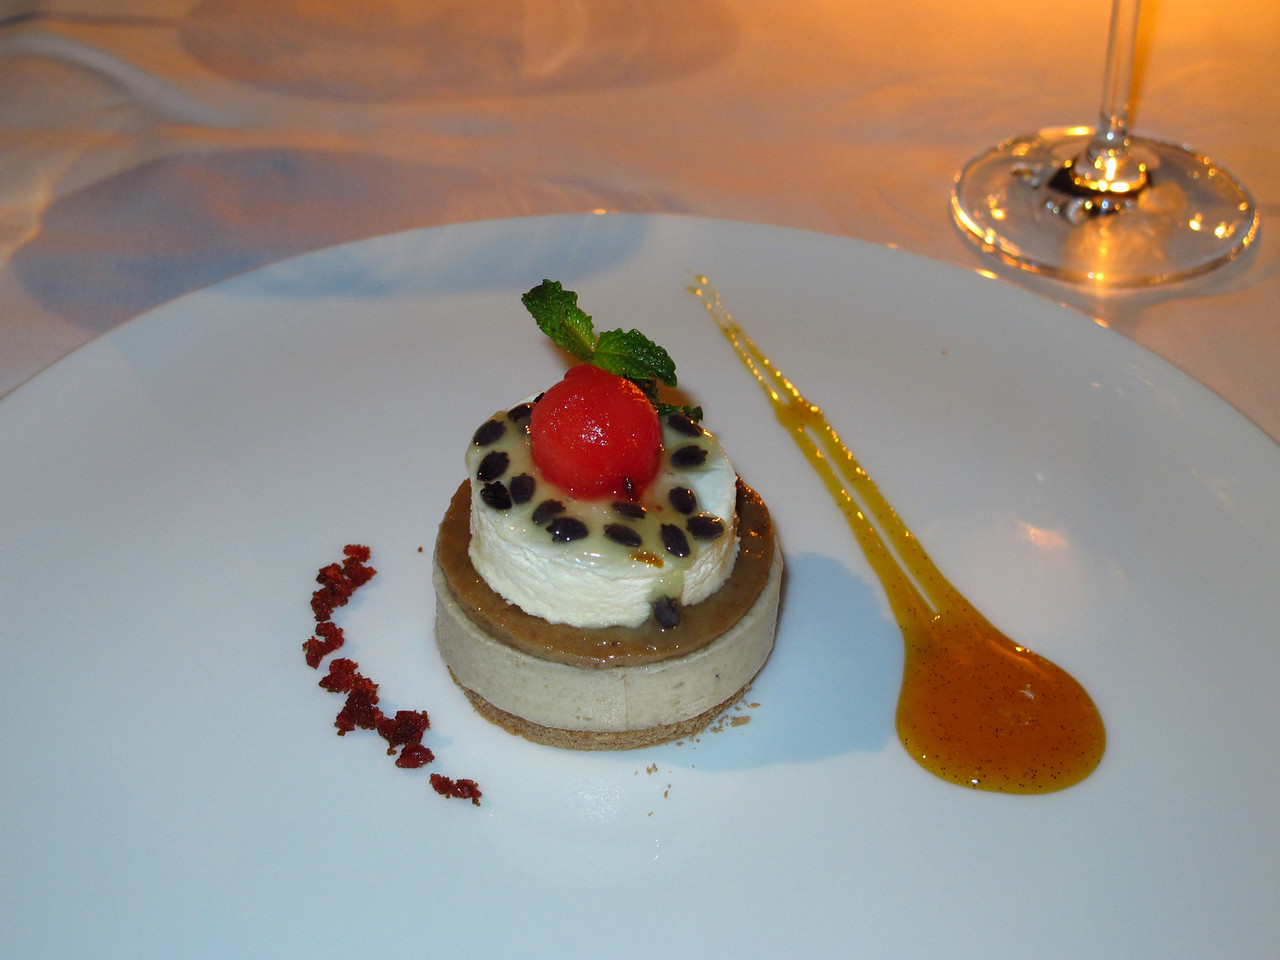 ..and for dessert it's a banana mousse with vanilla ice cream and passion fruit sauce.